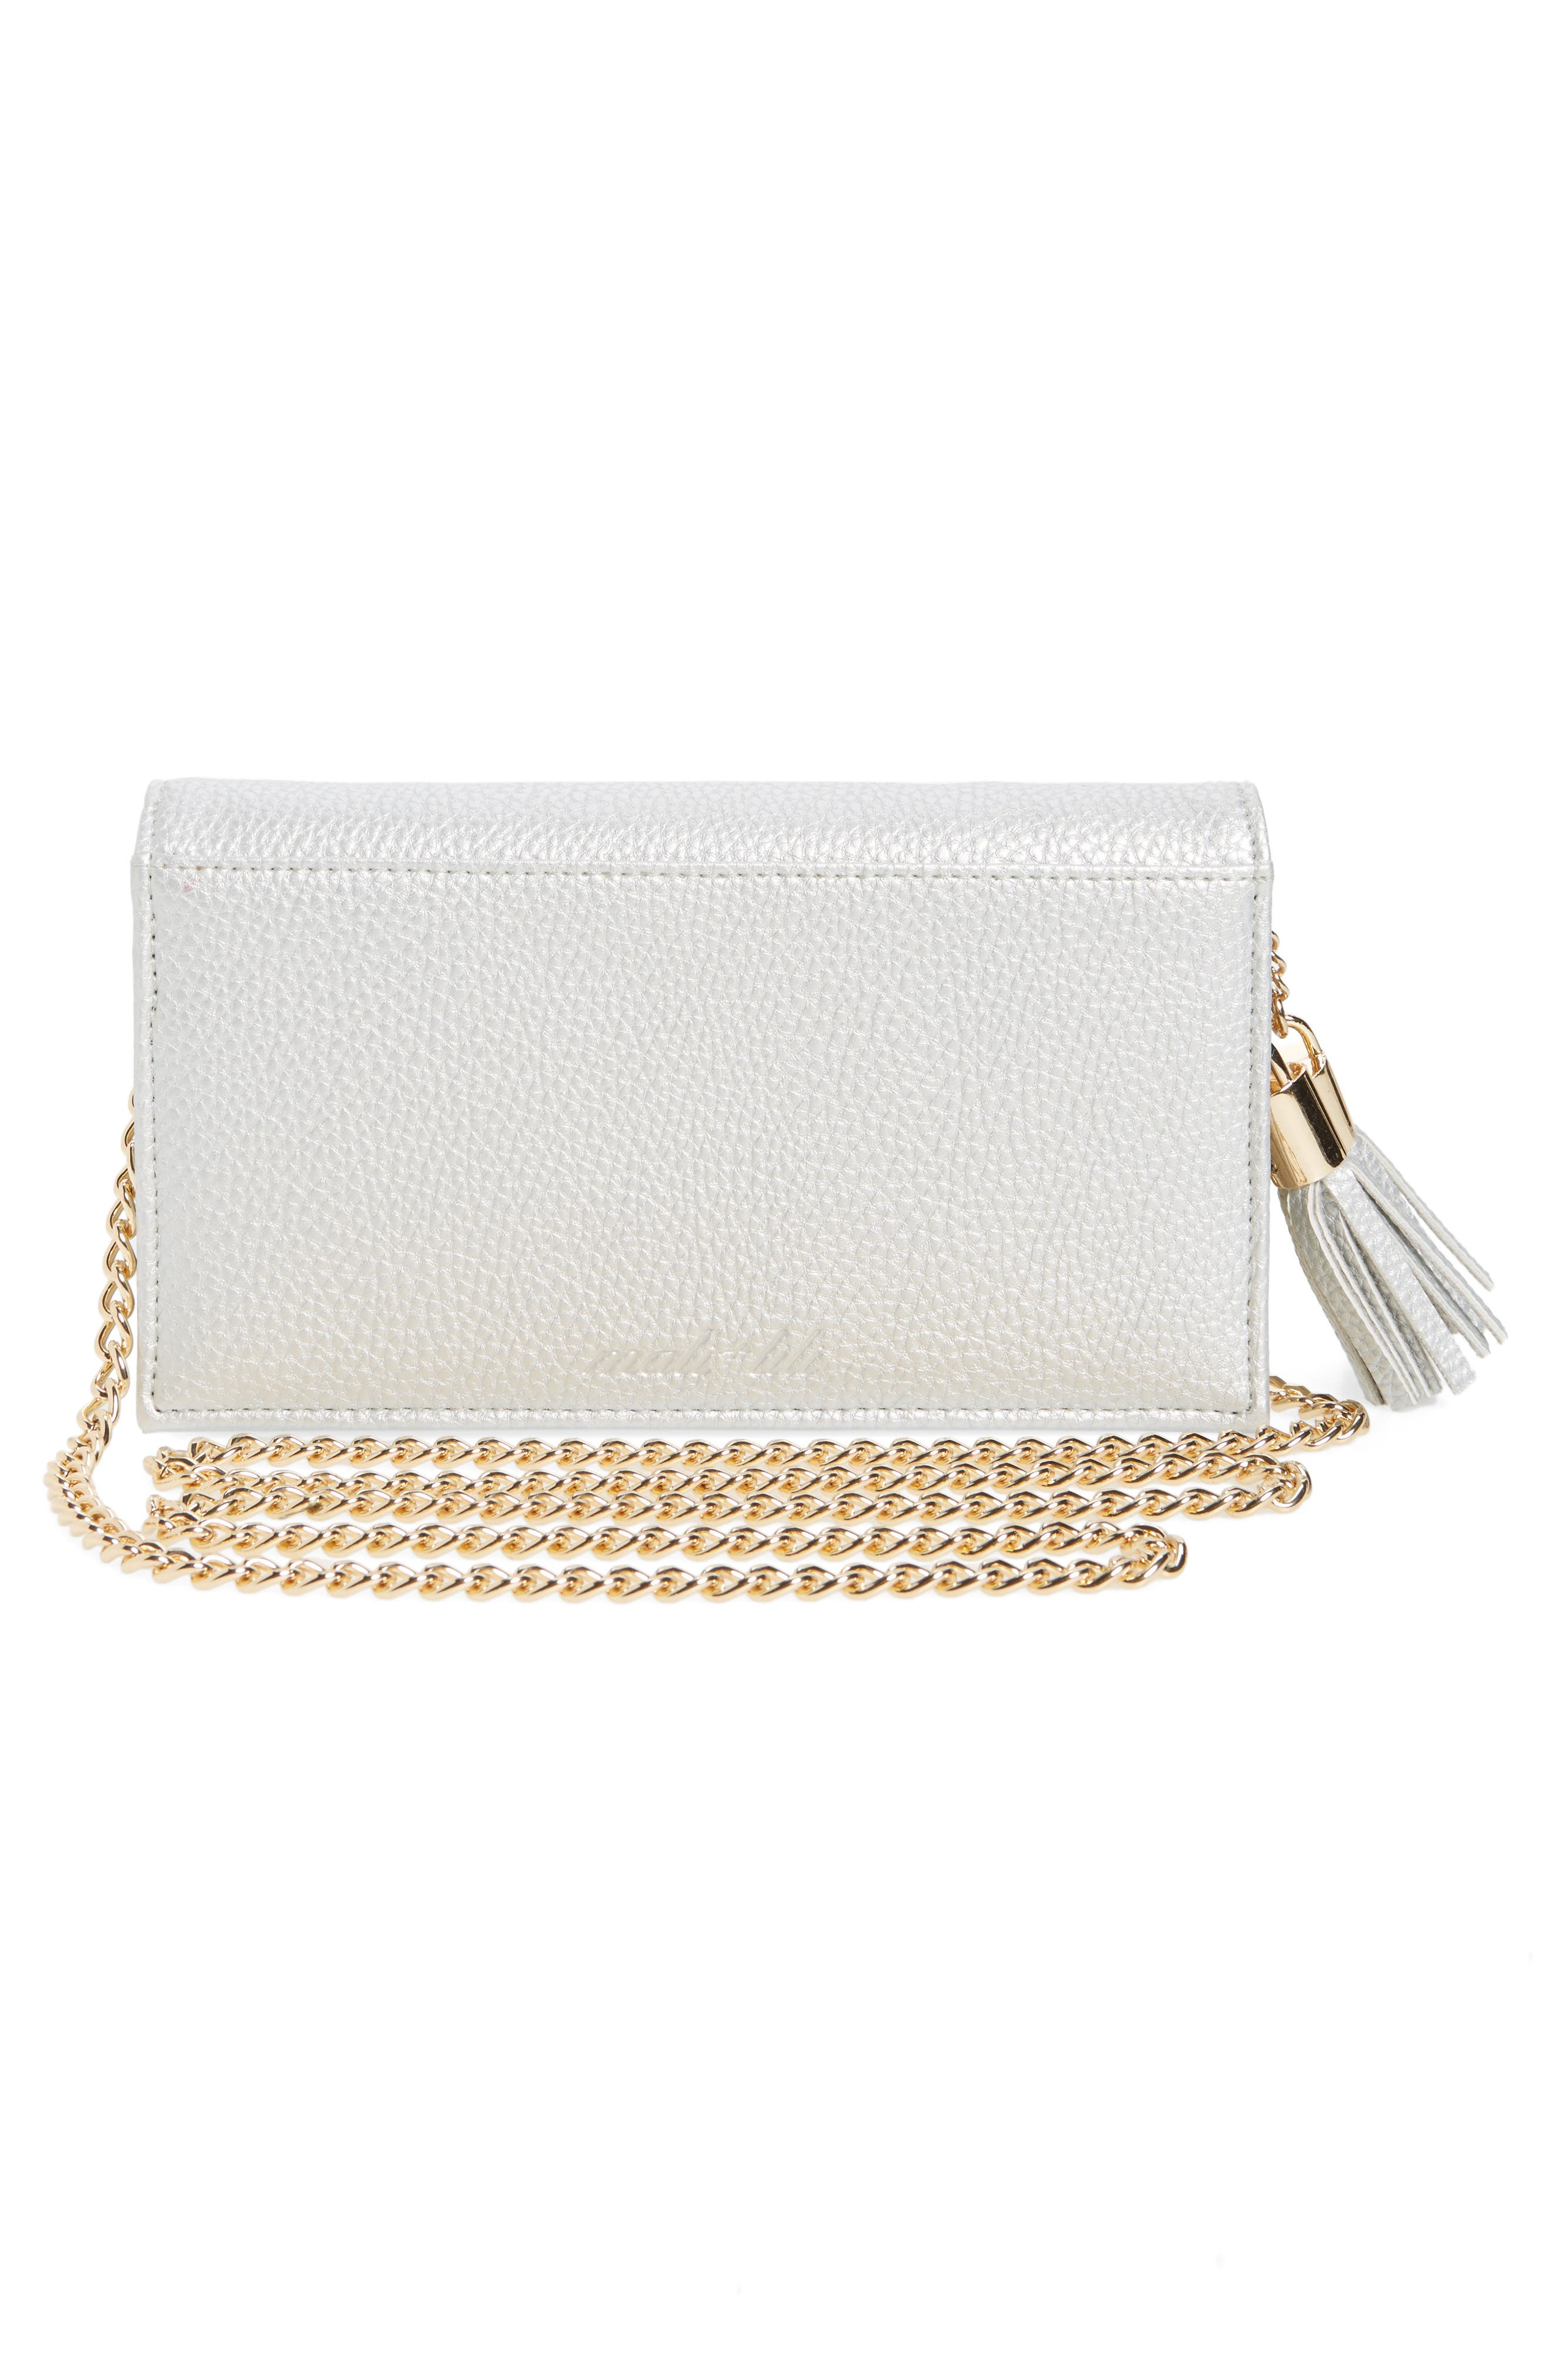 Mali + Lili Tassel Convertible Vegan Leather Clutch,                             Alternate thumbnail 3, color,                             Silver